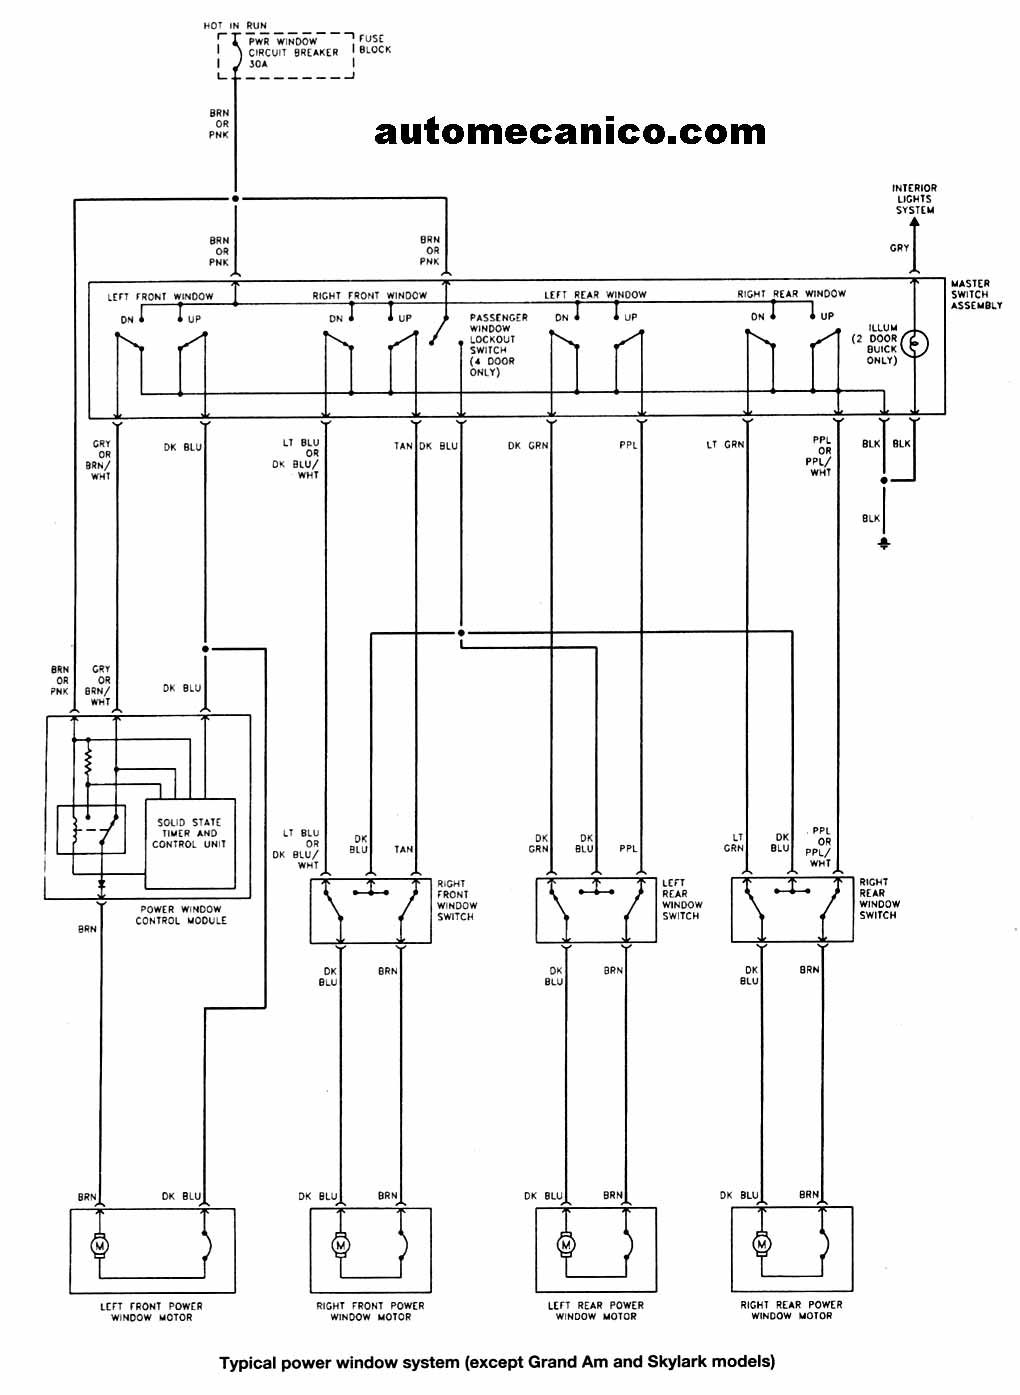 08a712694f4f79a2bcf7cc3b5e14896b moreover 3yezq 76 Seville Cadillac Crank I M Bypassing Ecu Sensors also 374038 Diagrama De Motor 4 9 Cadillac also Listings in addition 1979 Camaro Steering Parts Diagram. on 79 cadillac deville wiring diagram